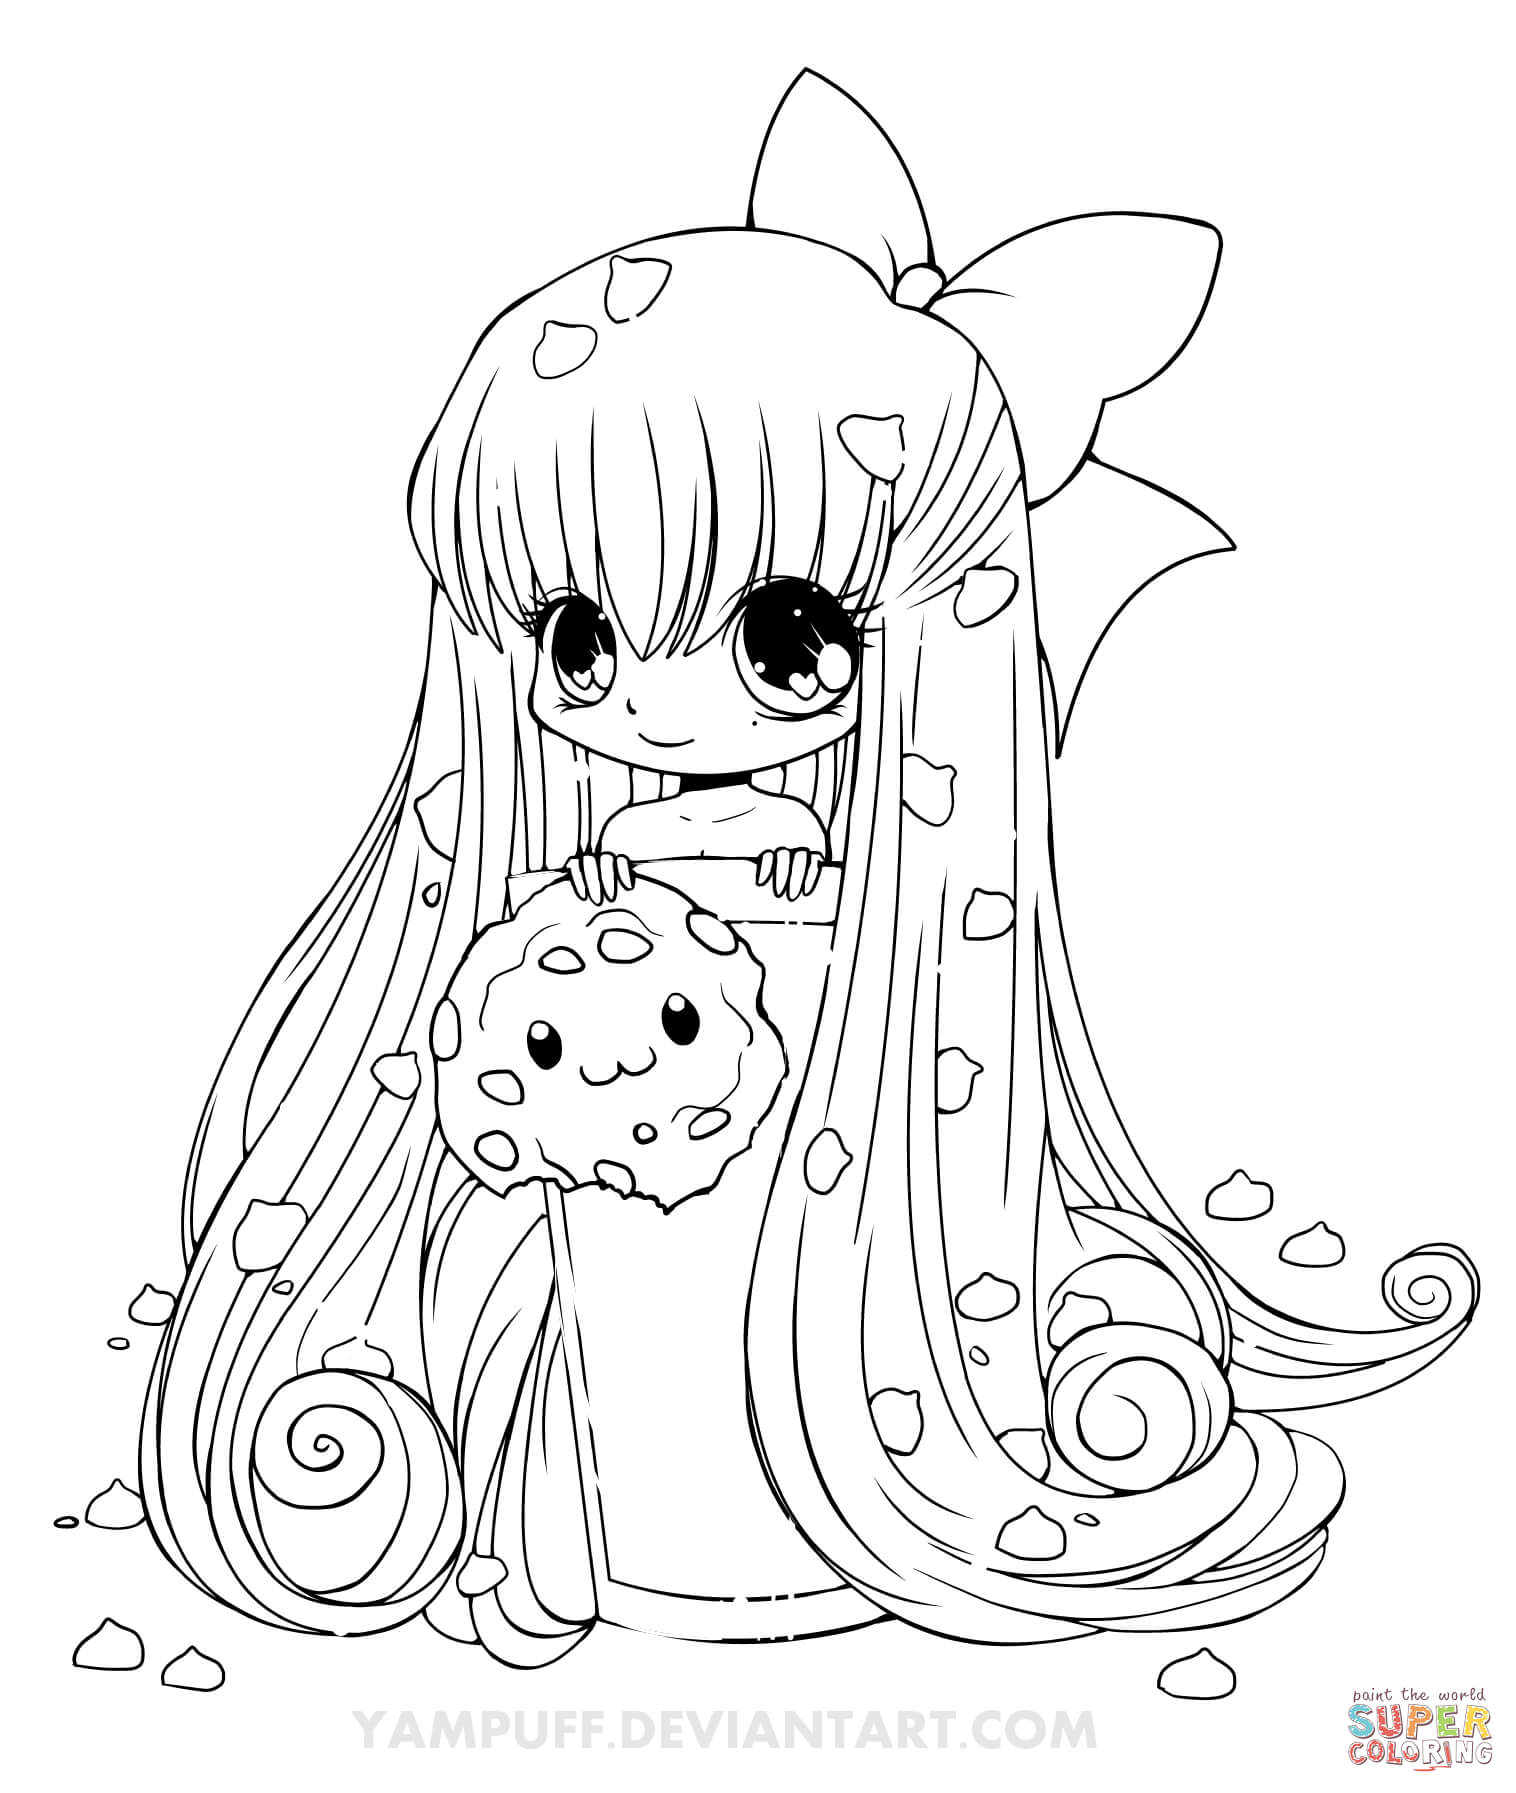 chibi cookie girl coloring page free printable coloring pages